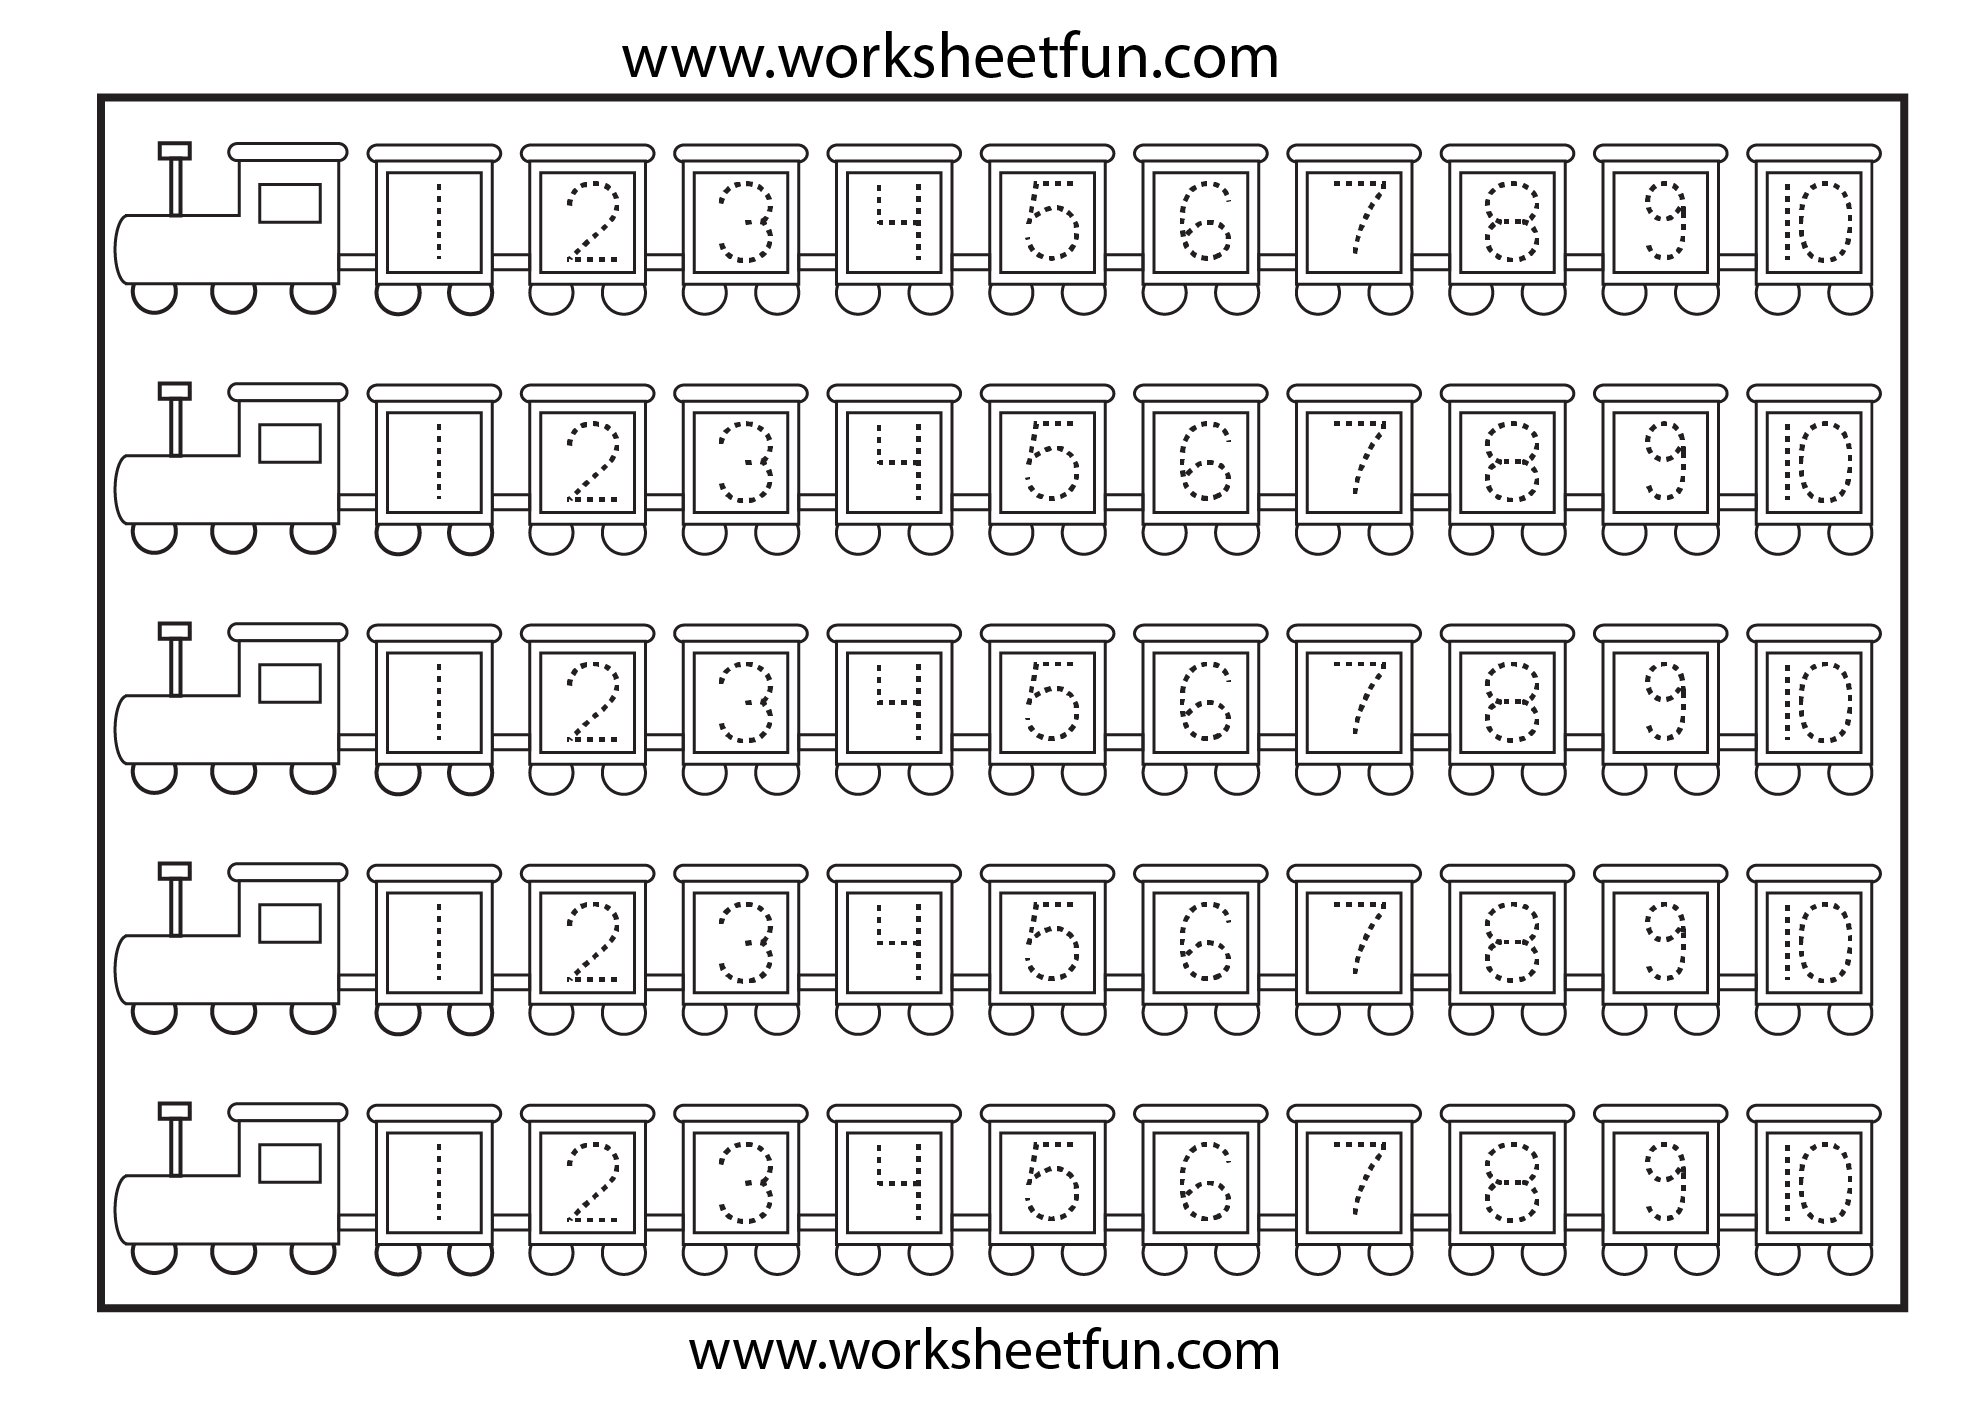 Worksheets Number Tracing Worksheets 1-10 number tracing 1 10 kindergarten ideas pinterest 10